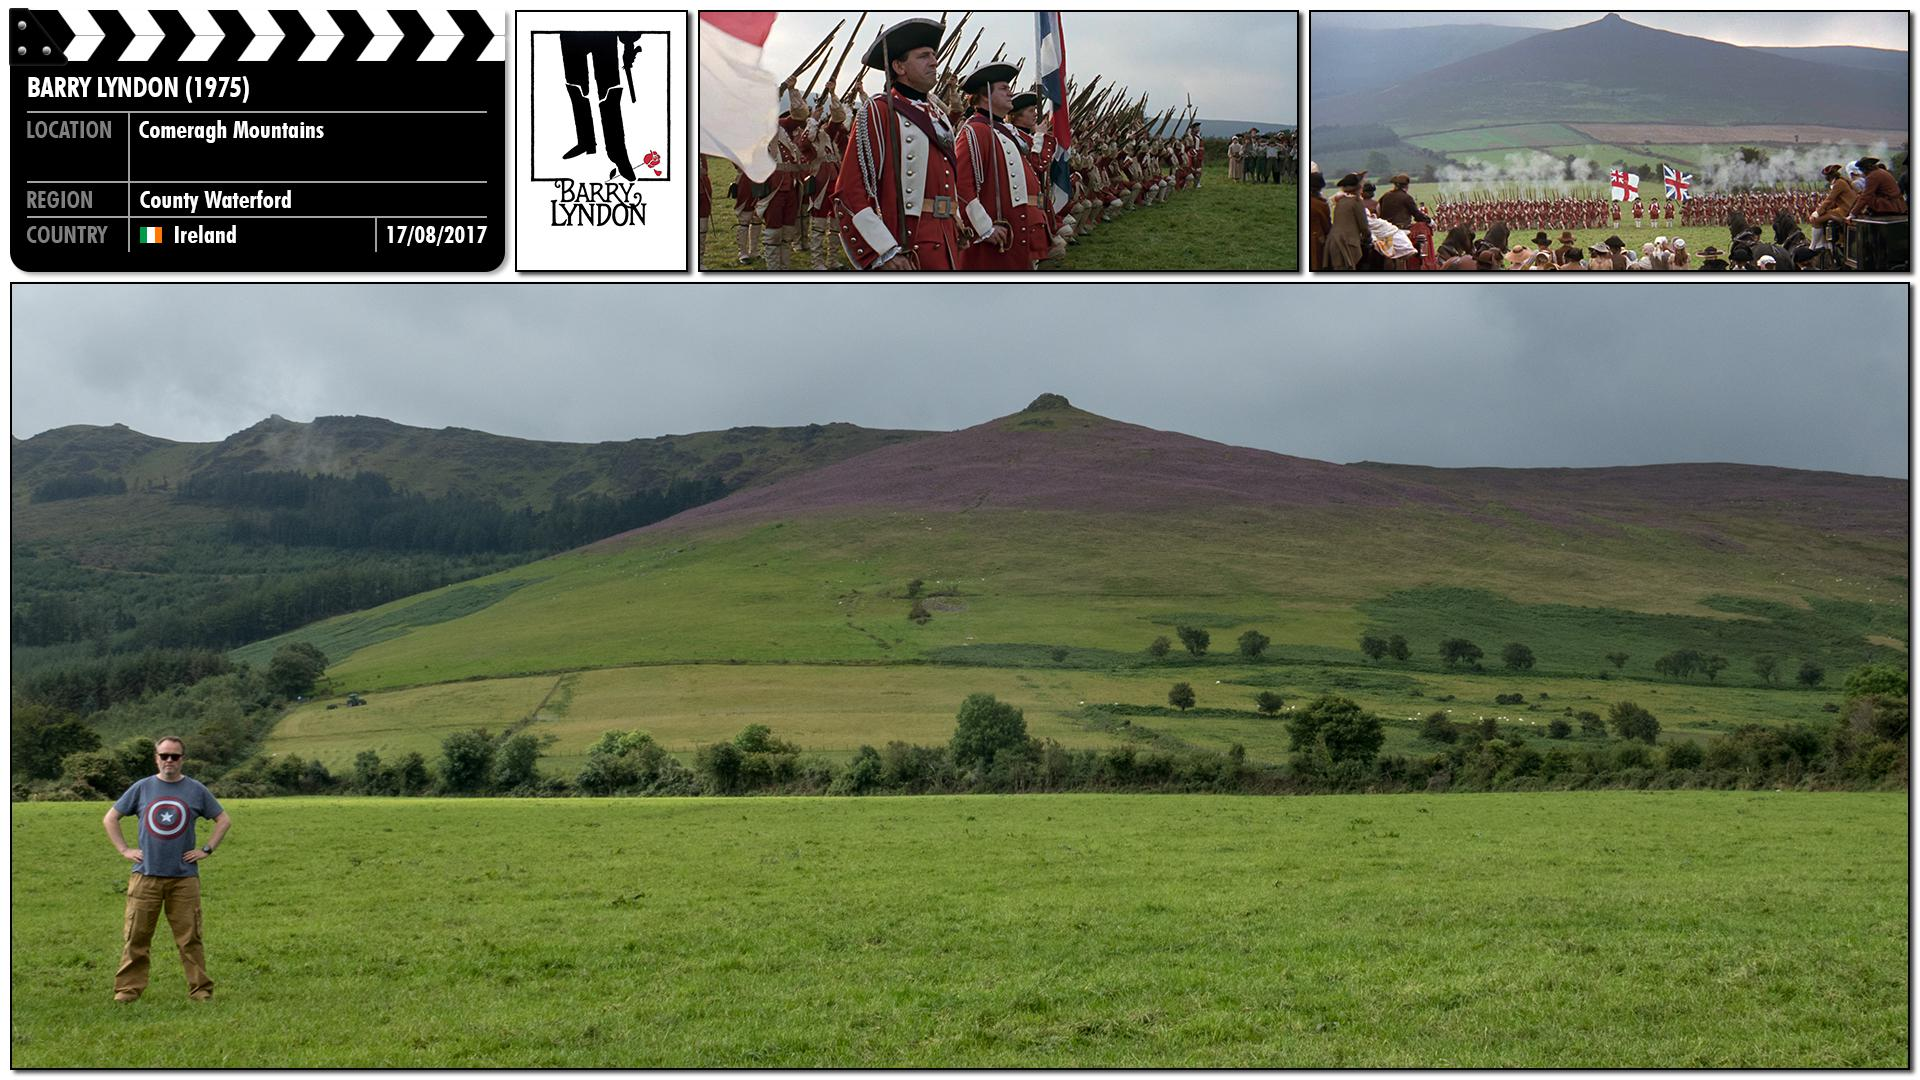 Filming location photo for Barry Lyndon (1975) 12 of 15